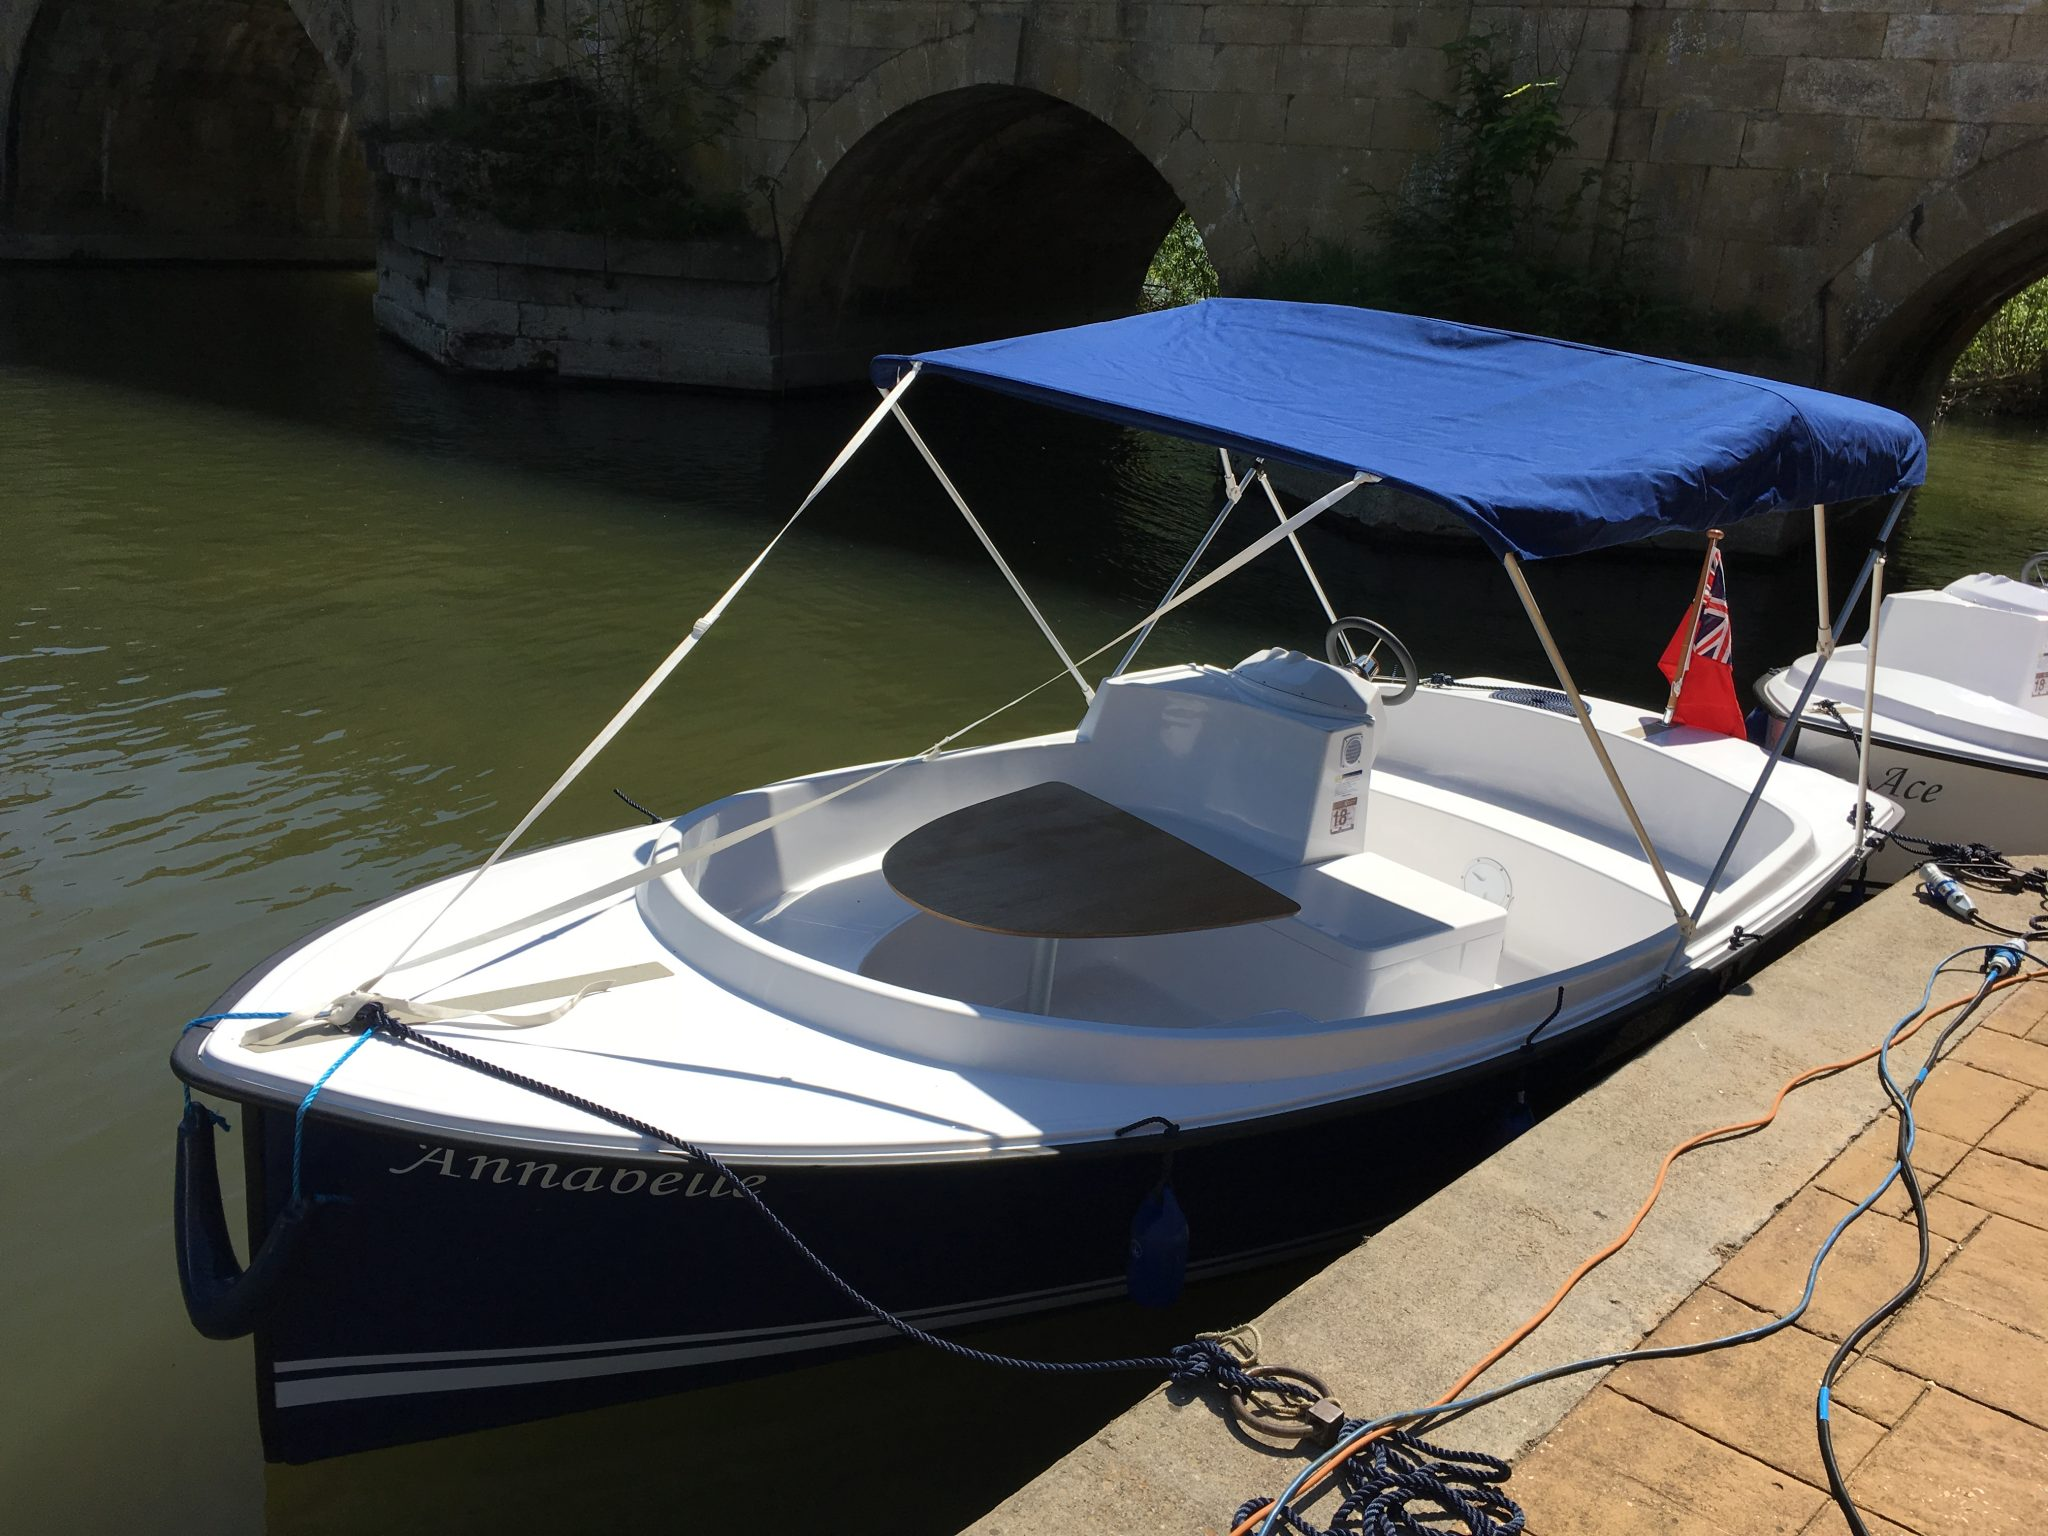 Electric Boating - Scoop from Ruban Bleu